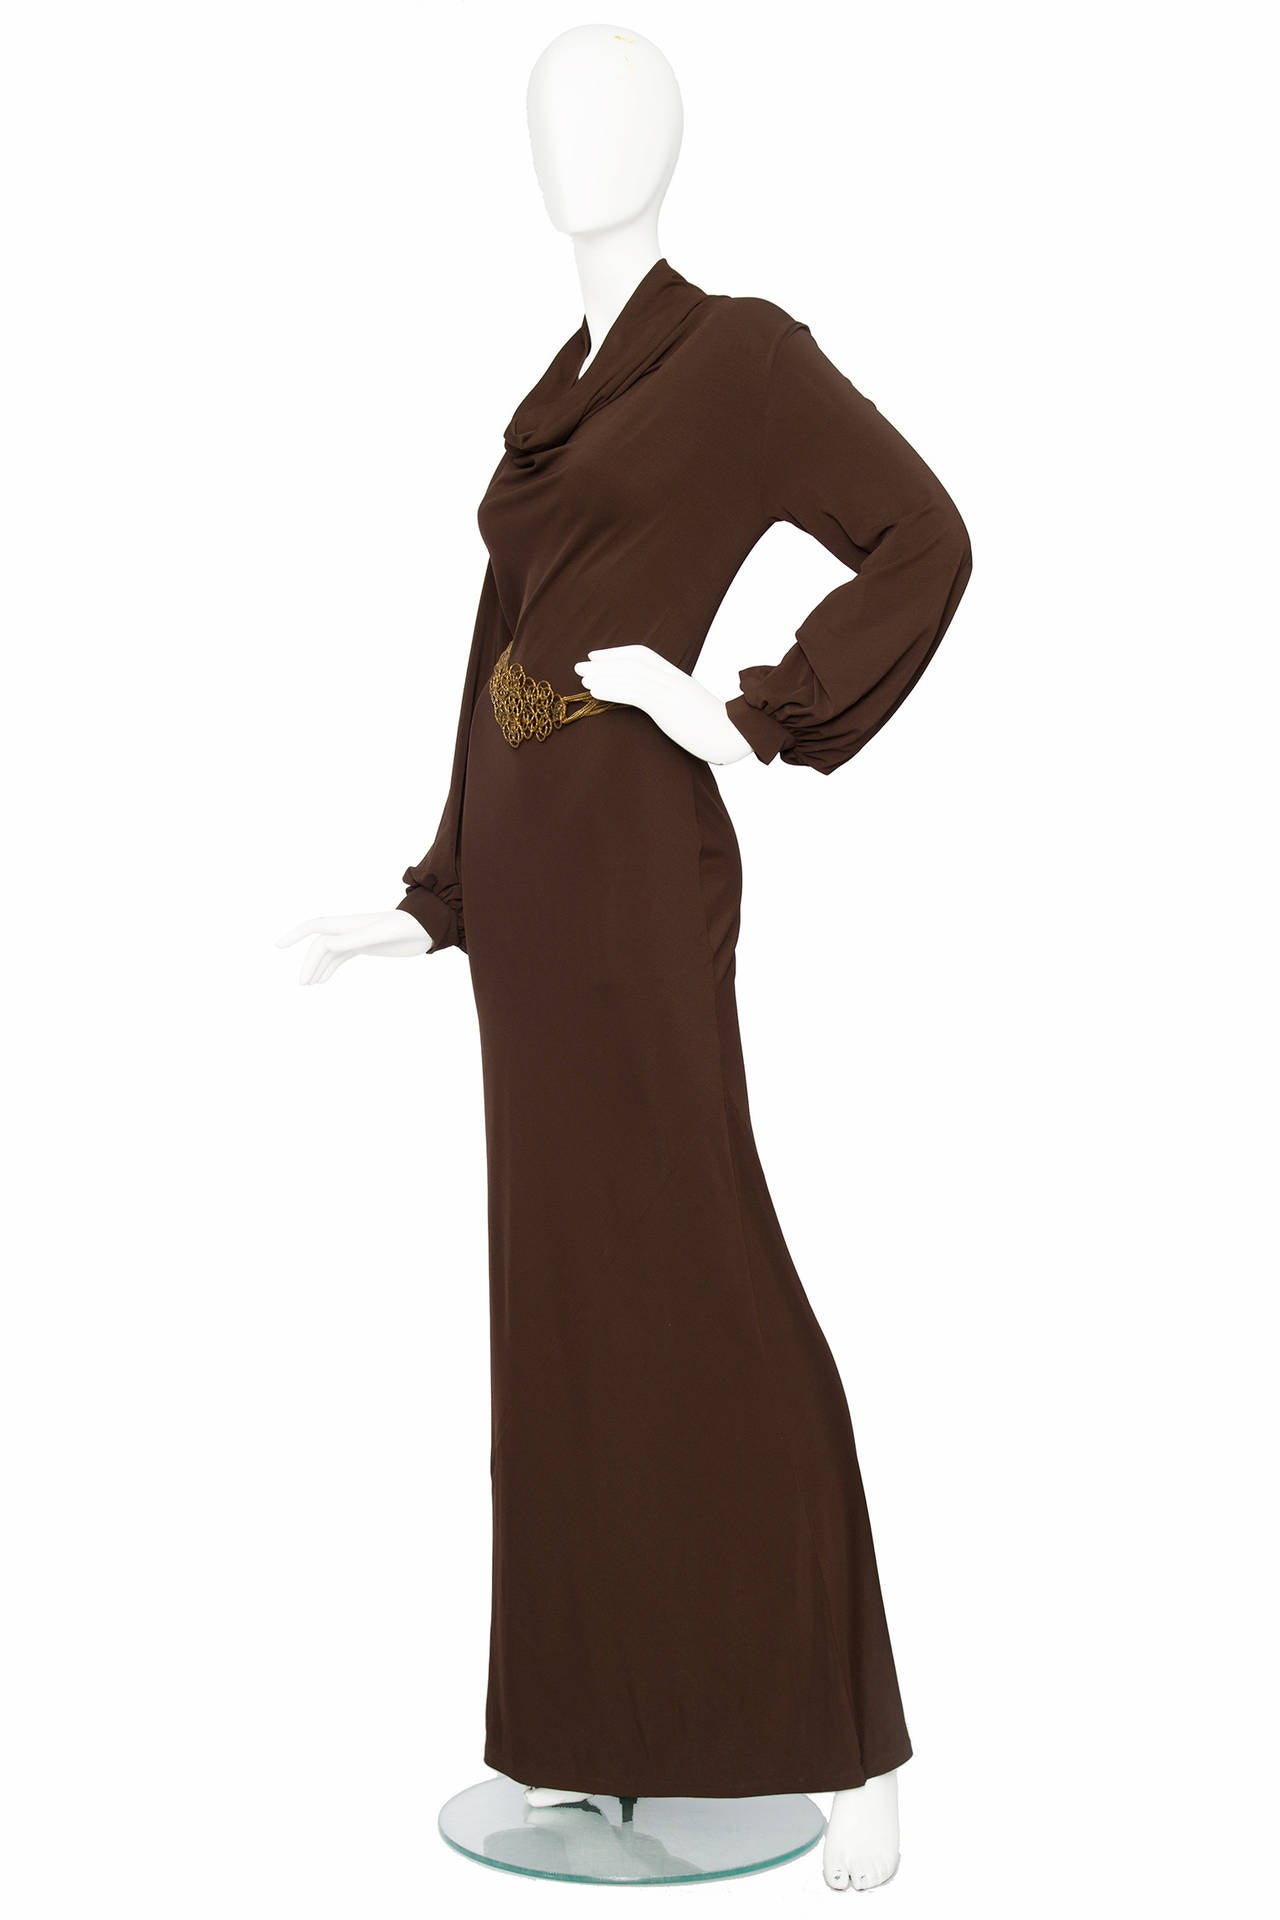 1990s Yves Saint Laurent Brown Jersey Evening Dress 2